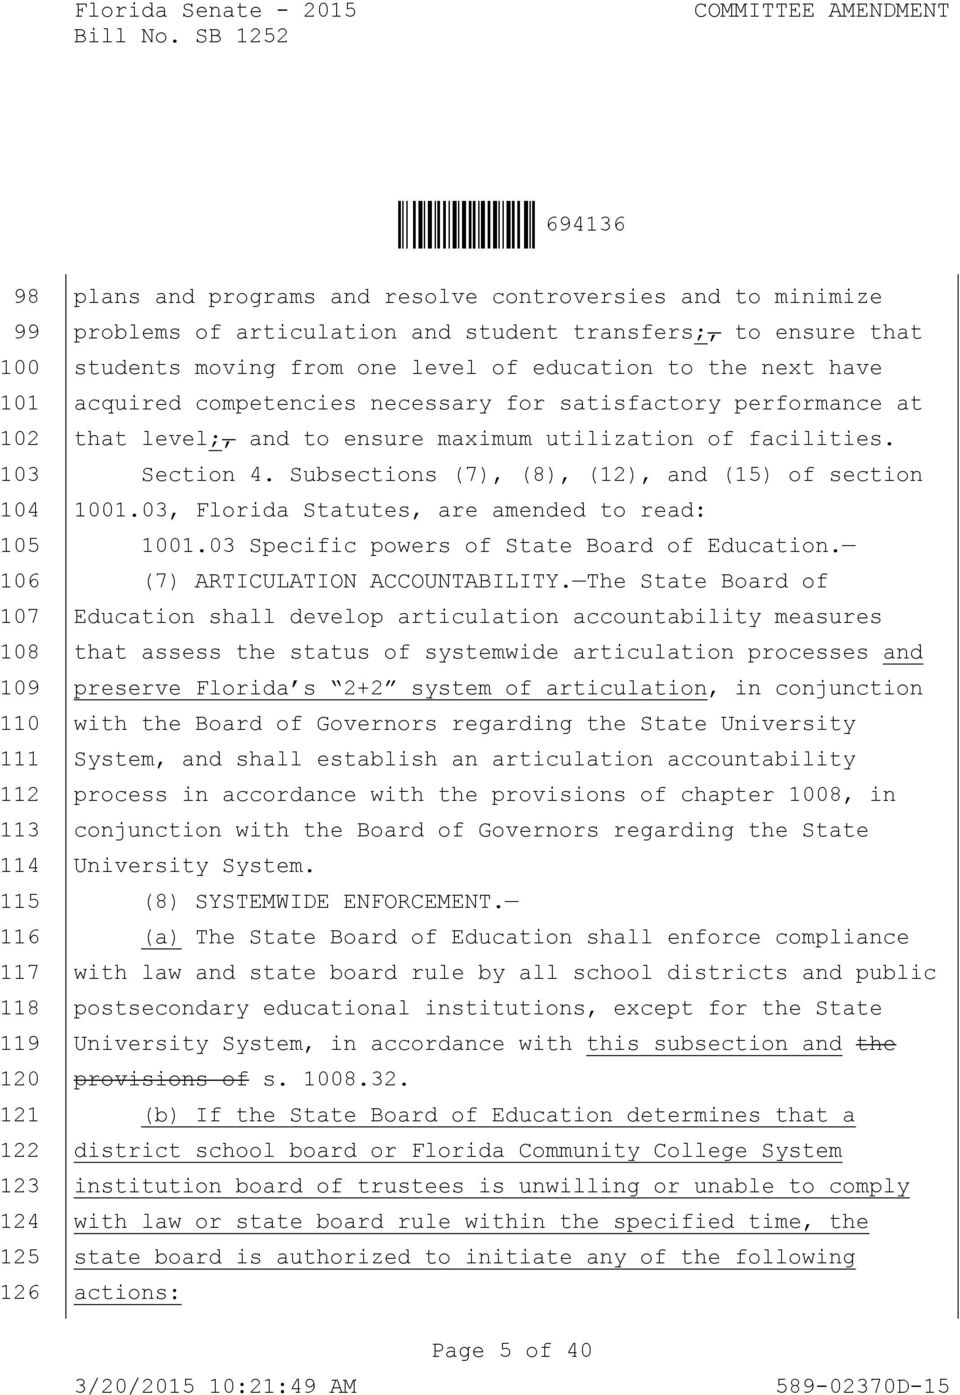 utilization of facilities. Section 4. Subsections (7), (8), (12), and (15) of section 1001.03, Florida Statutes, are amended to read: 1001.03 Specific powers of State Board of Education.